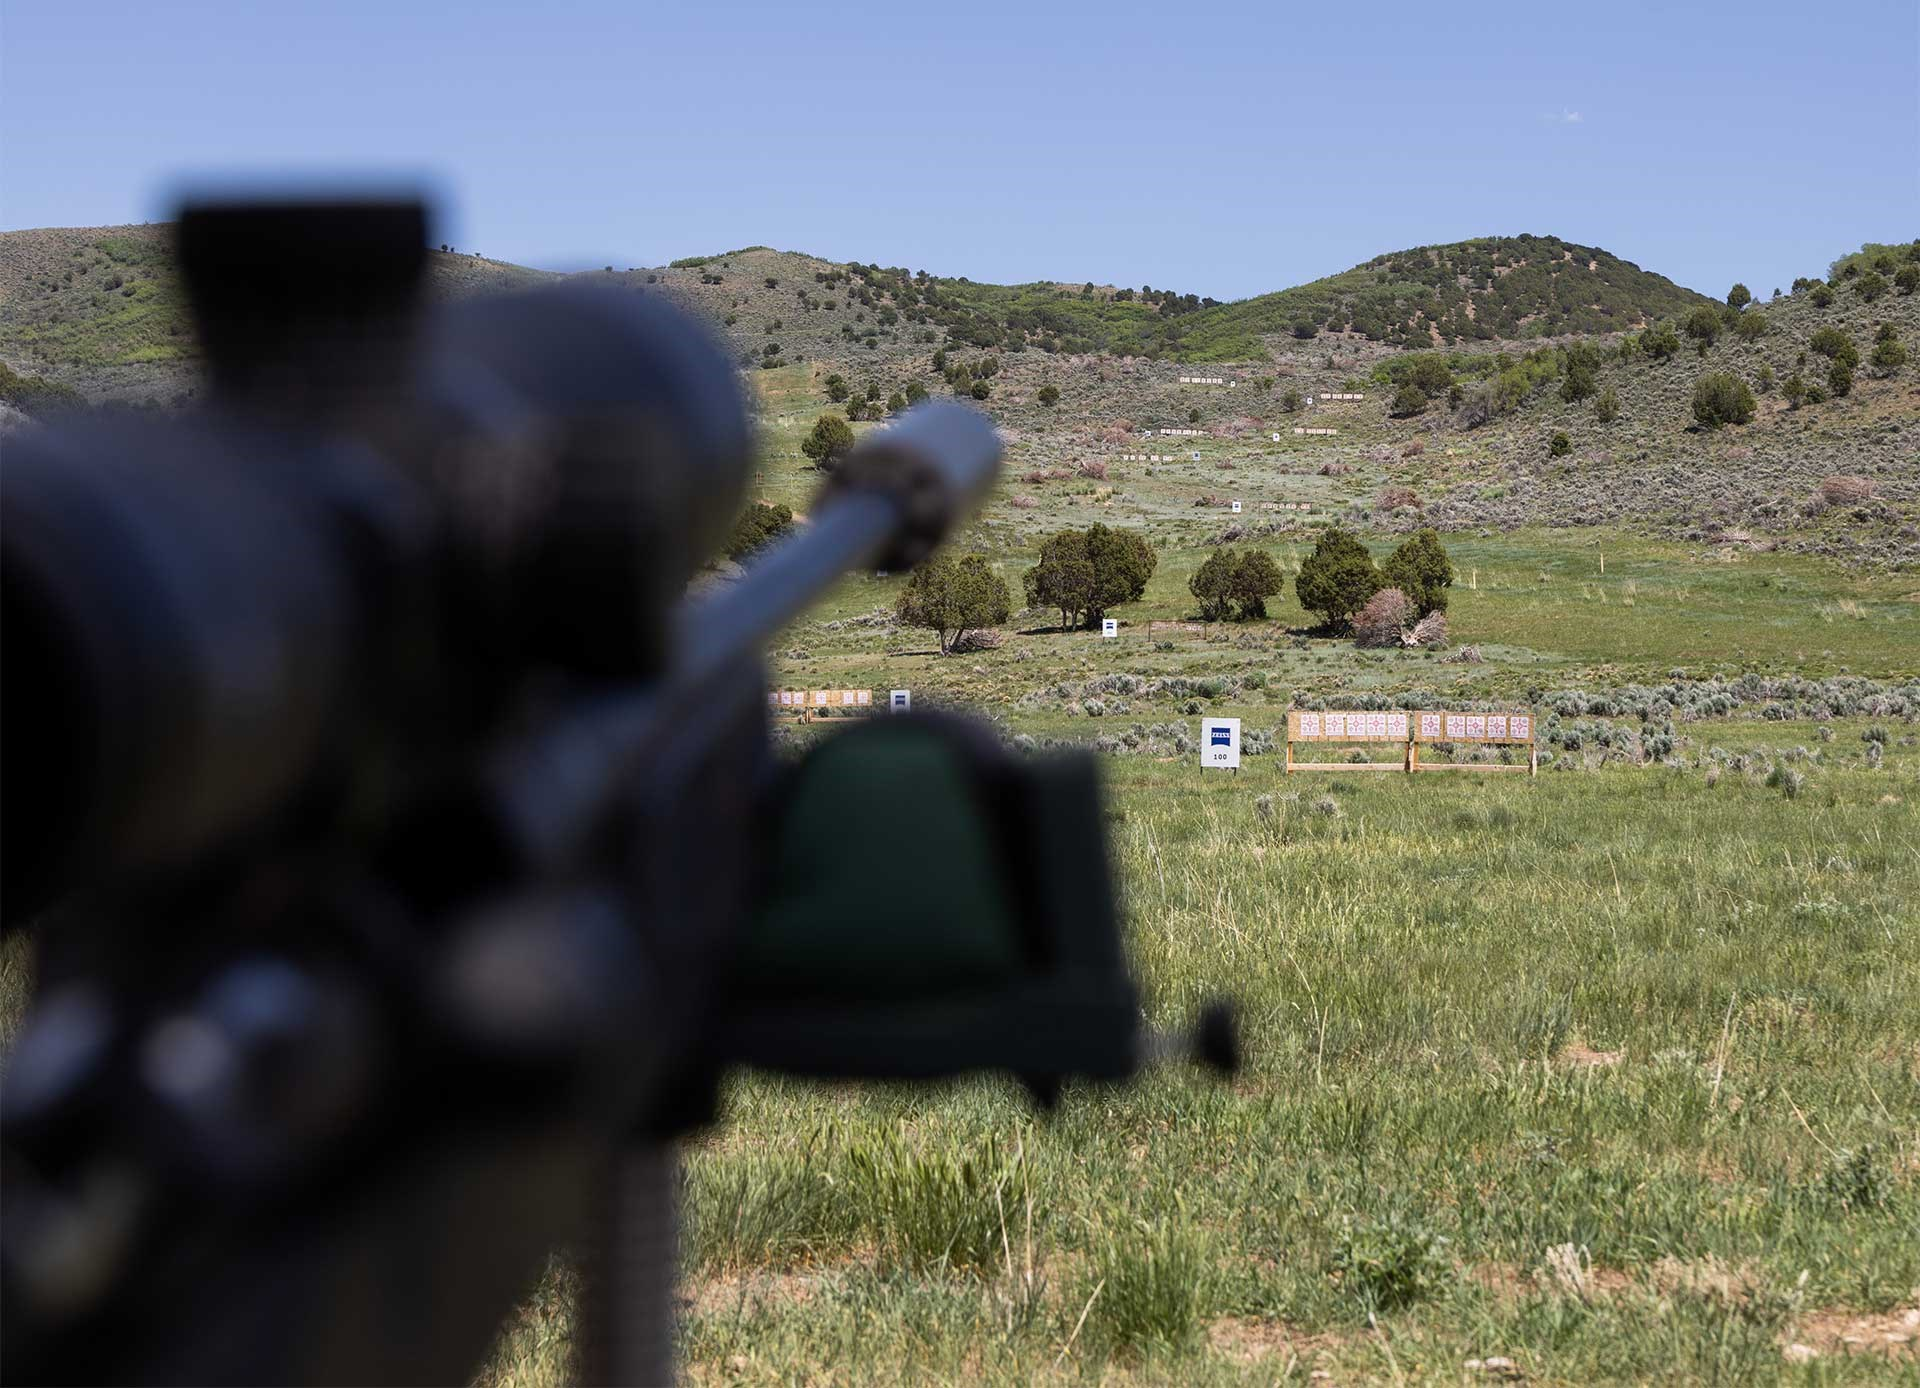 A rifle barrel and scope are seen in the foreground, while targets dot a hillside in the background.